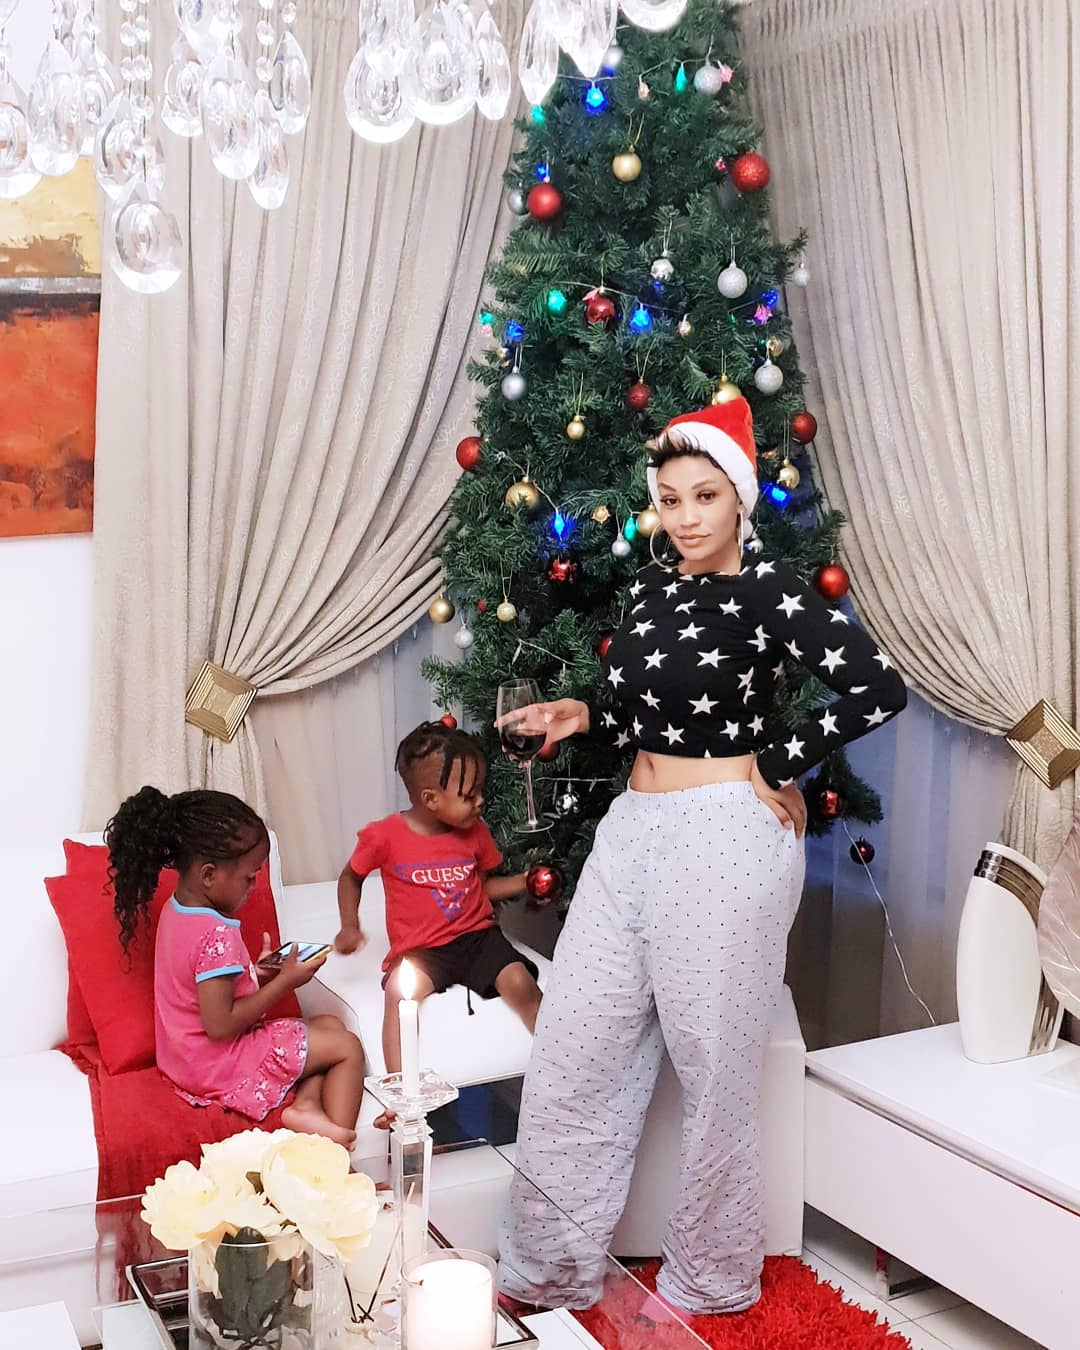 Zari-enjoying-time-with-the-two-kids-she-shares-with-Diamond